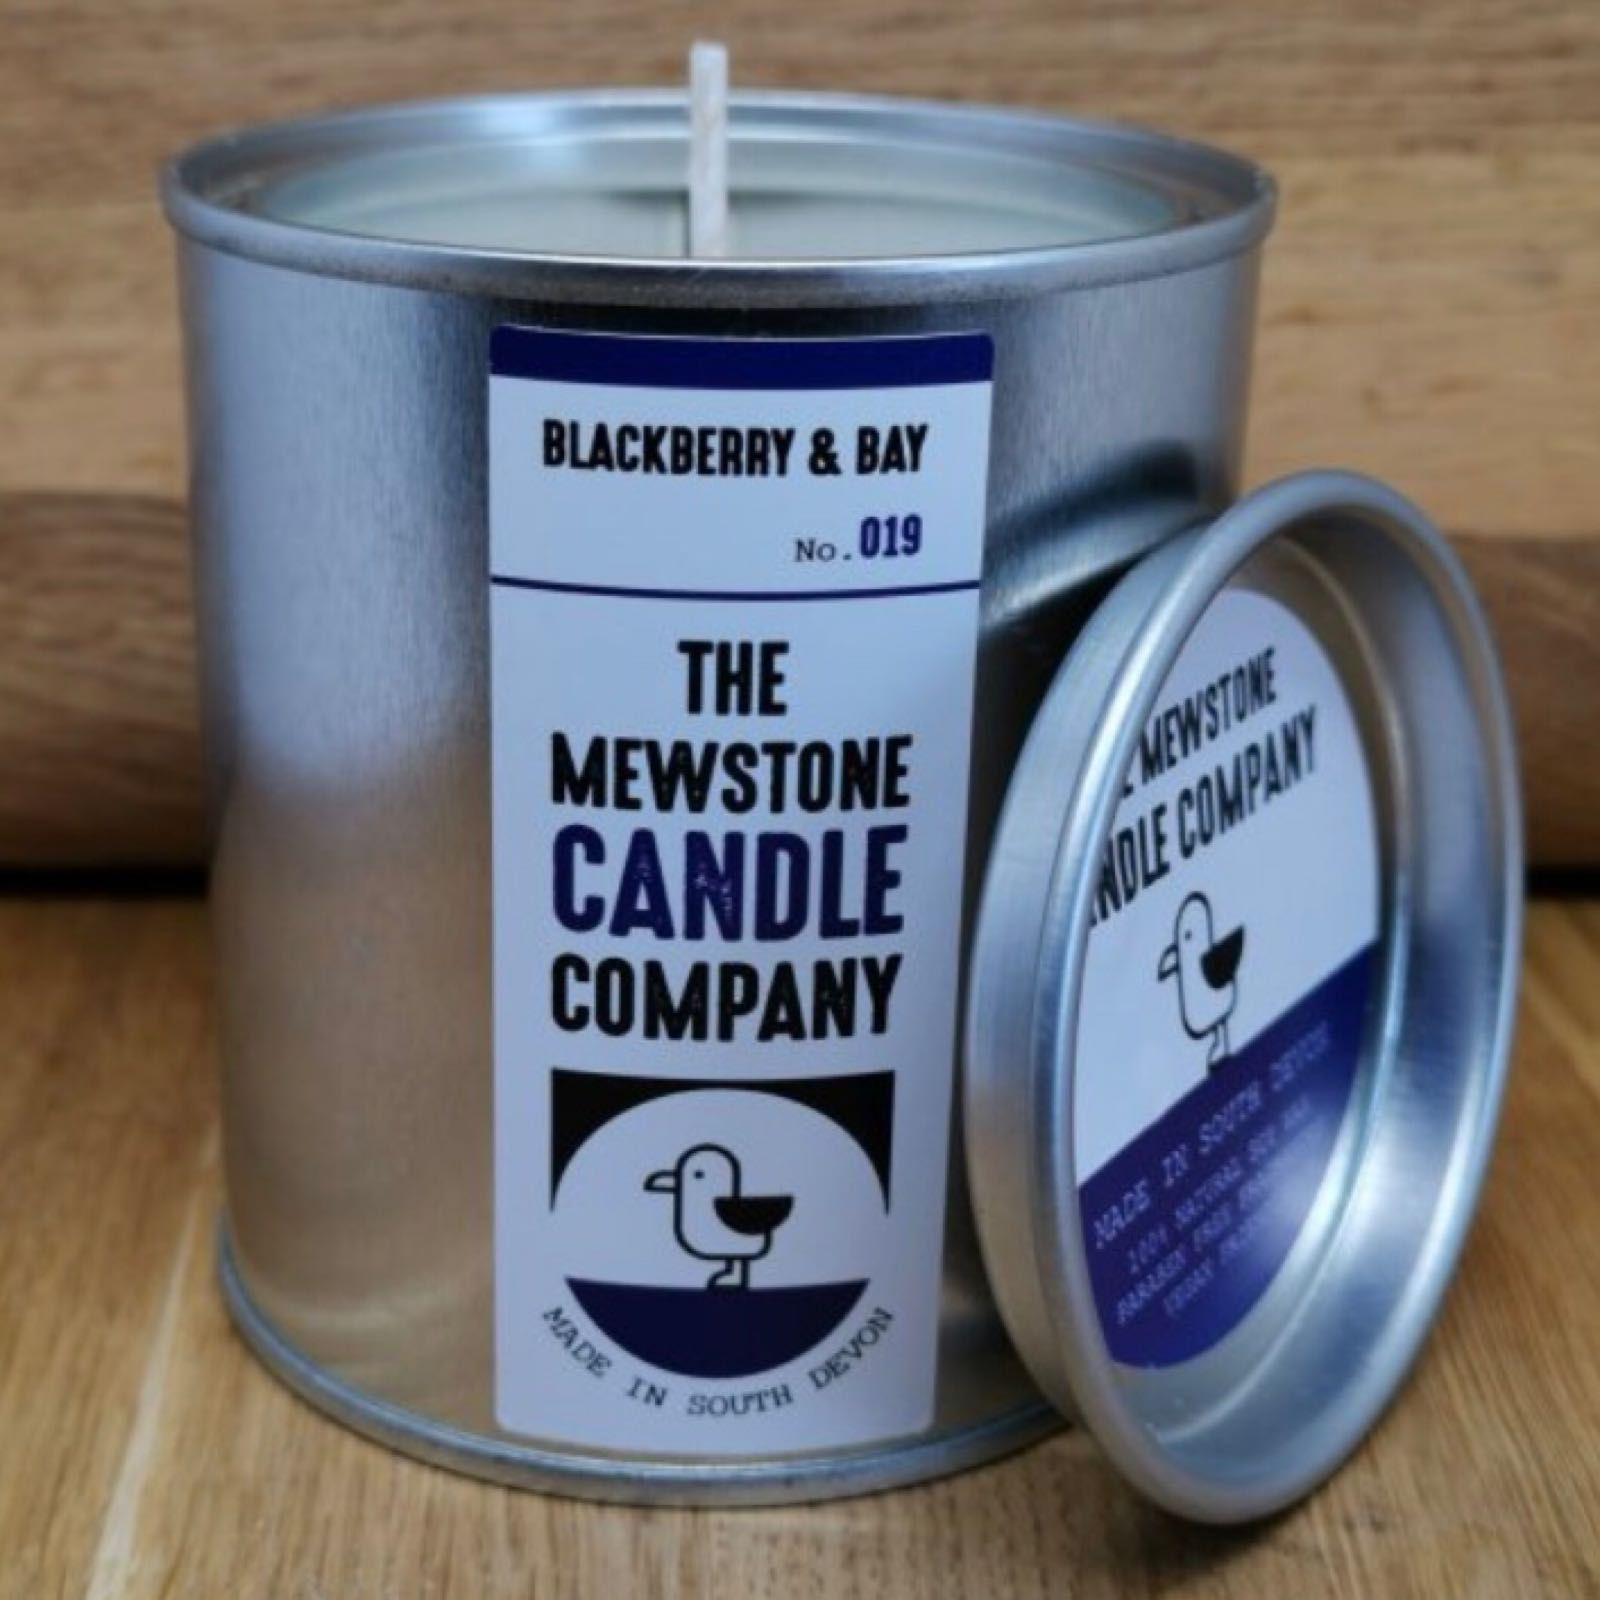 Blackberry & Bay Paint Tin Candle